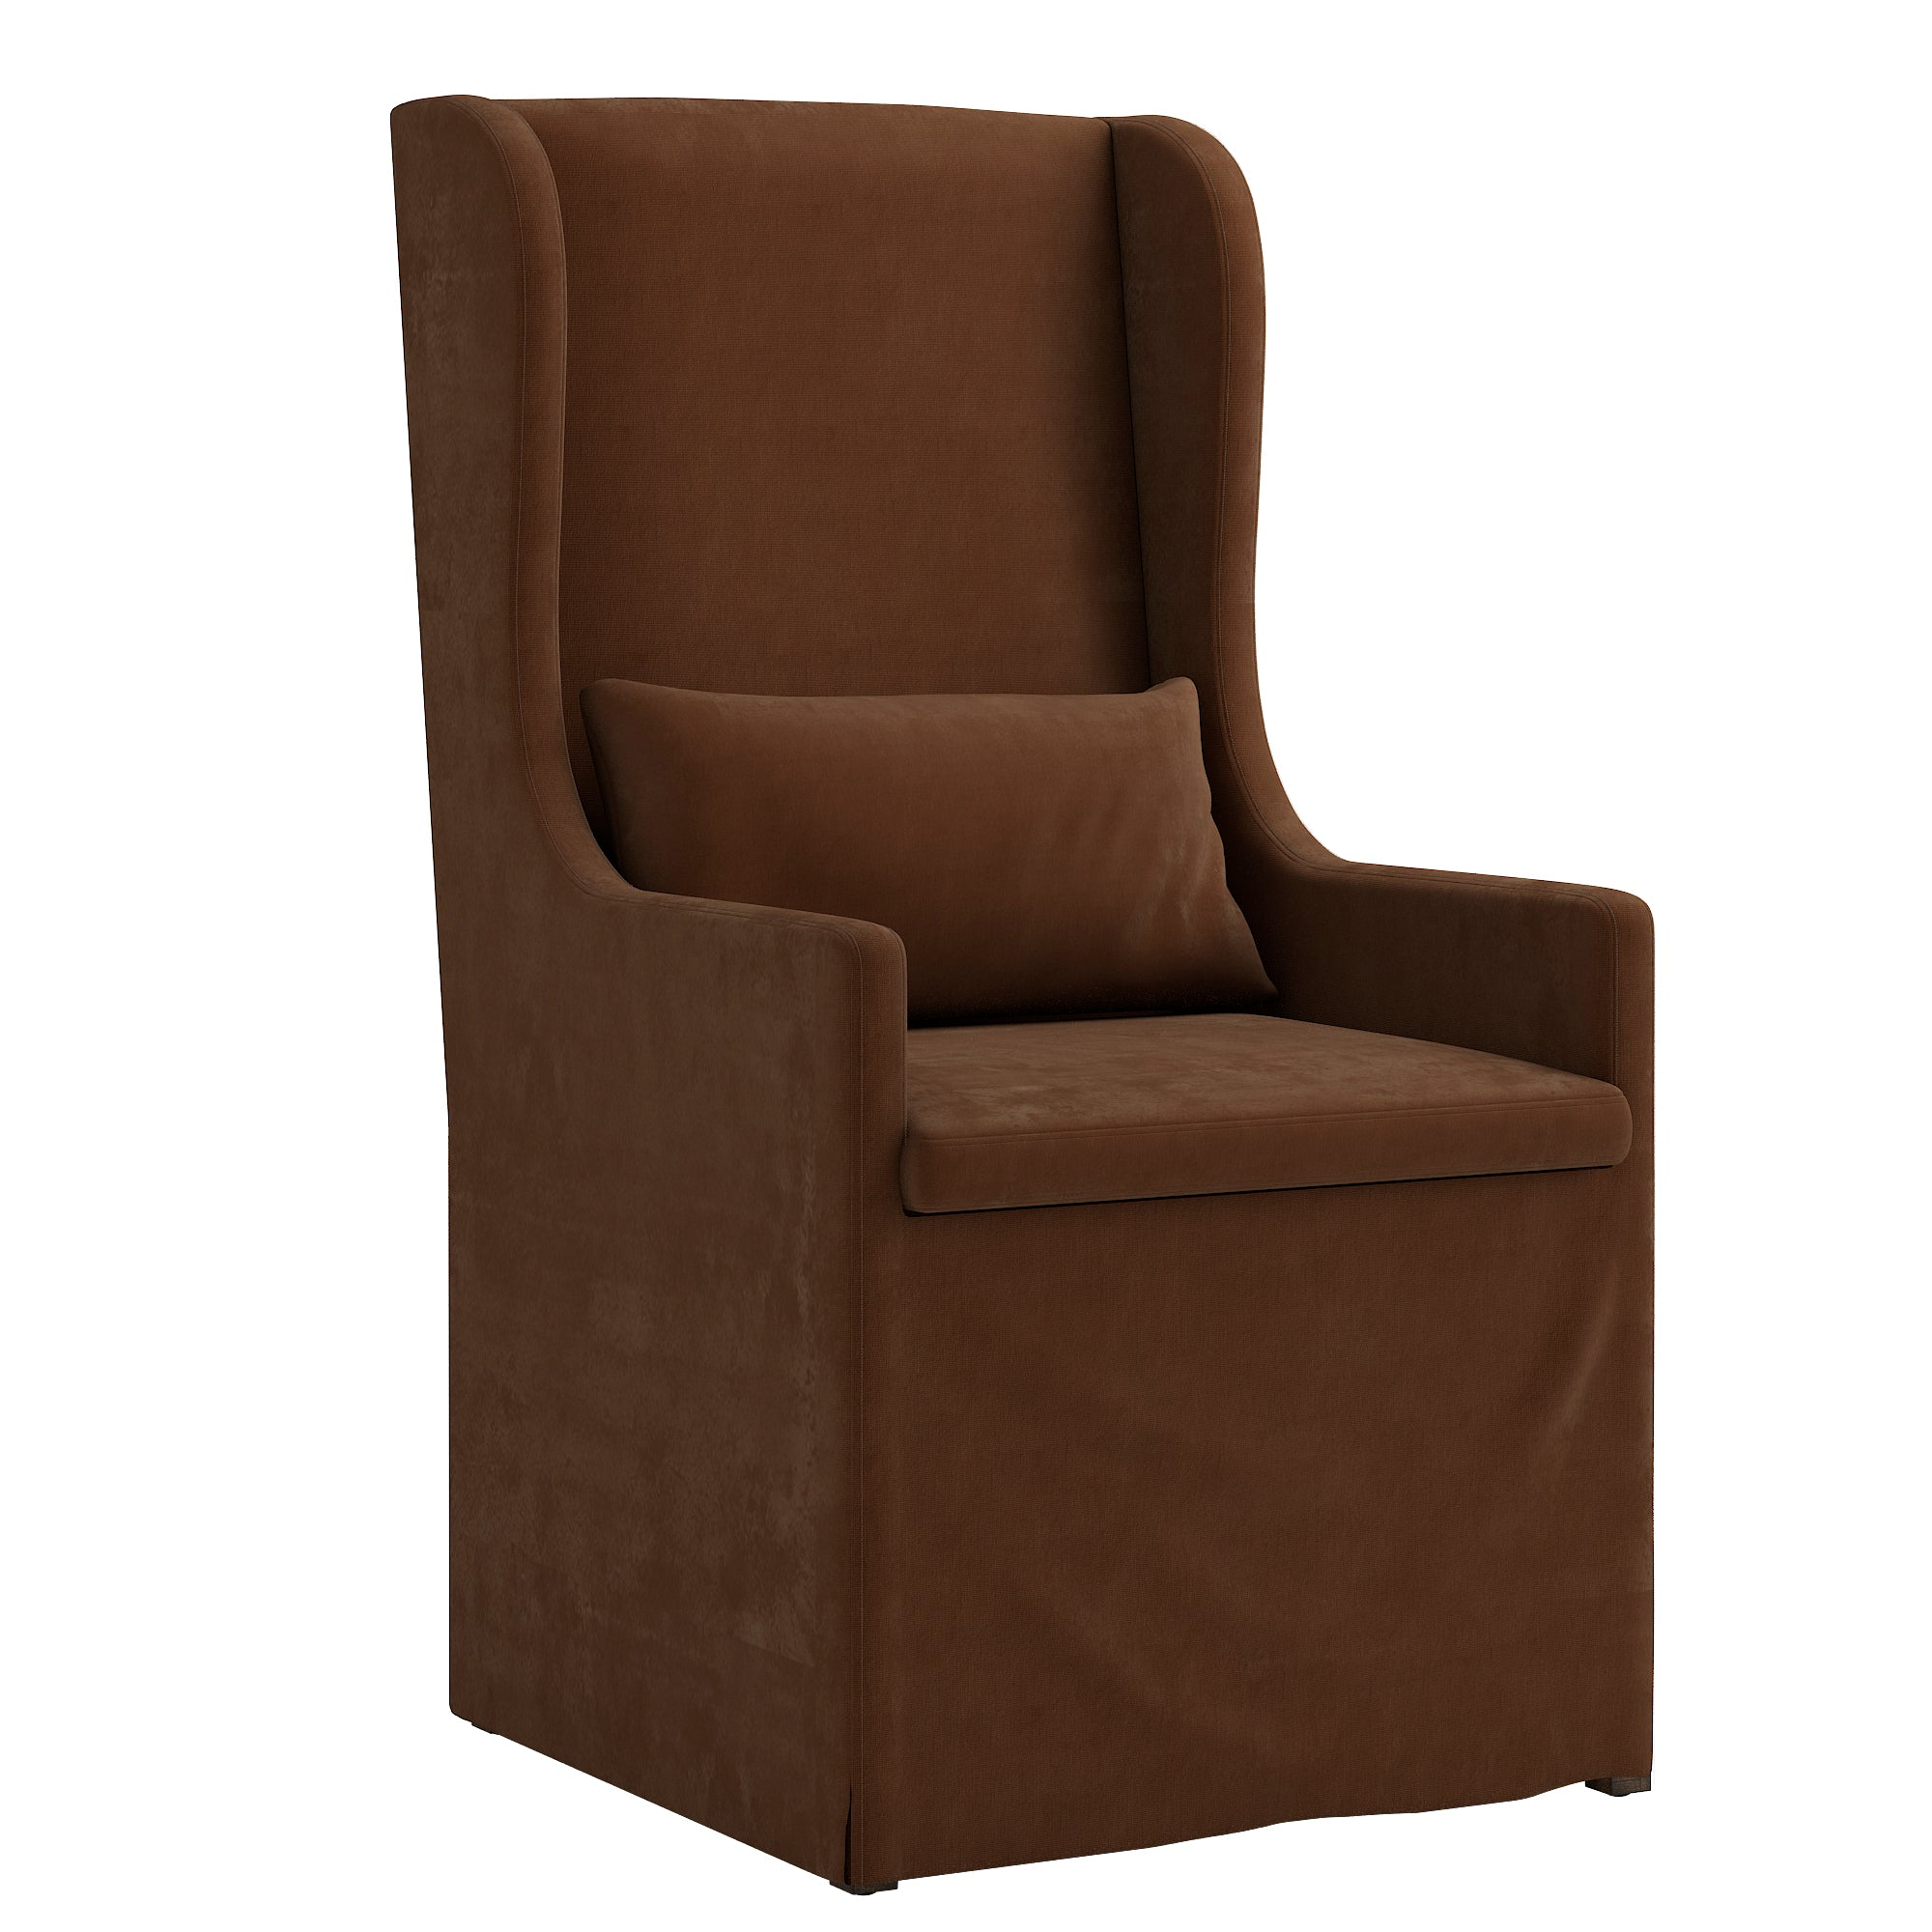 Slipcovered Wingback Parson Chair - Brown